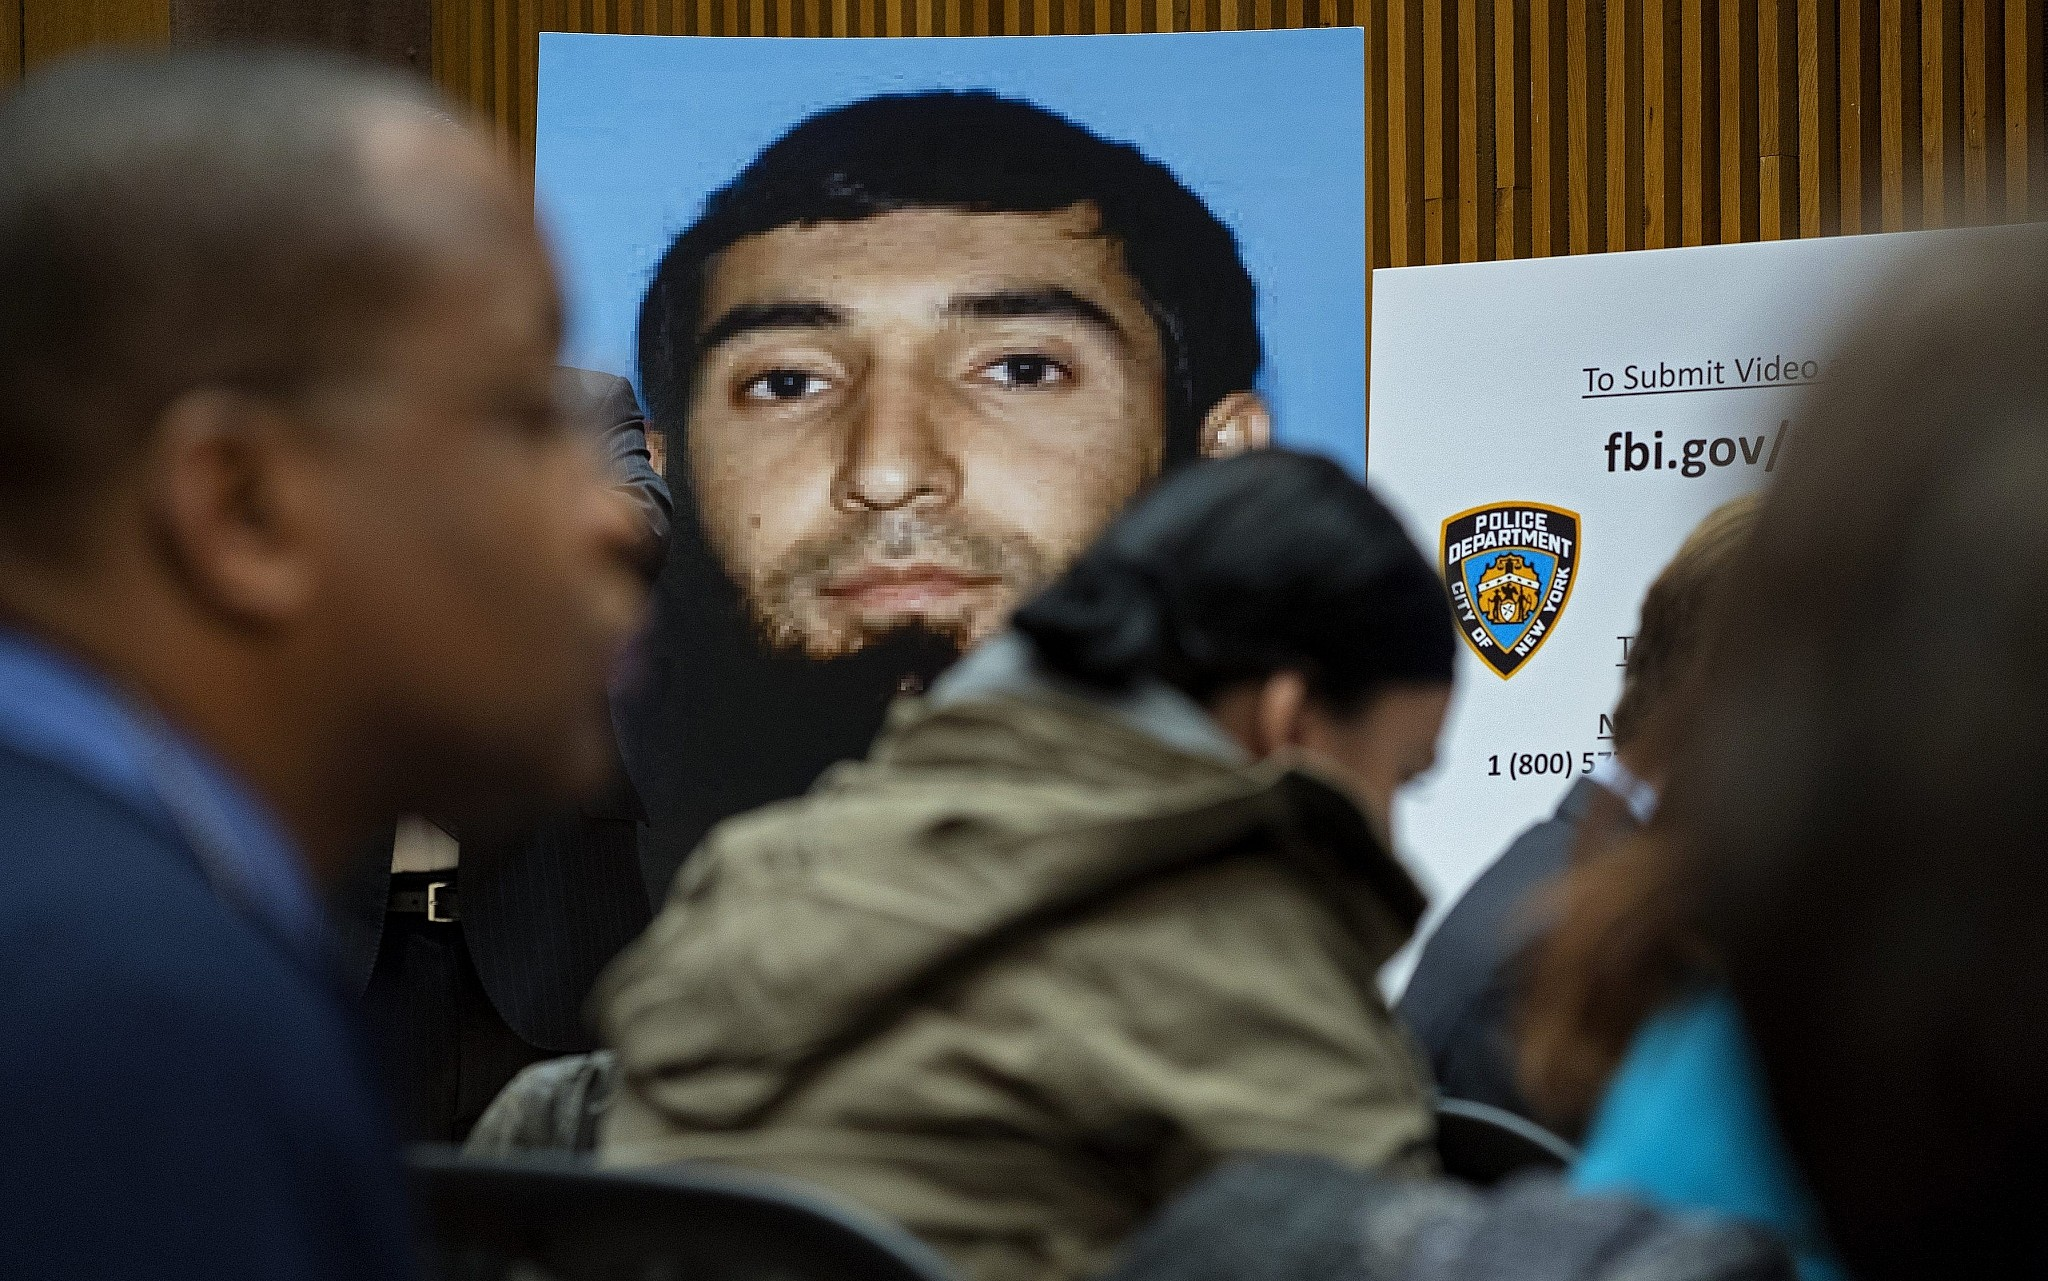 Accused NYC terrorist faces 20 new charges, including murder